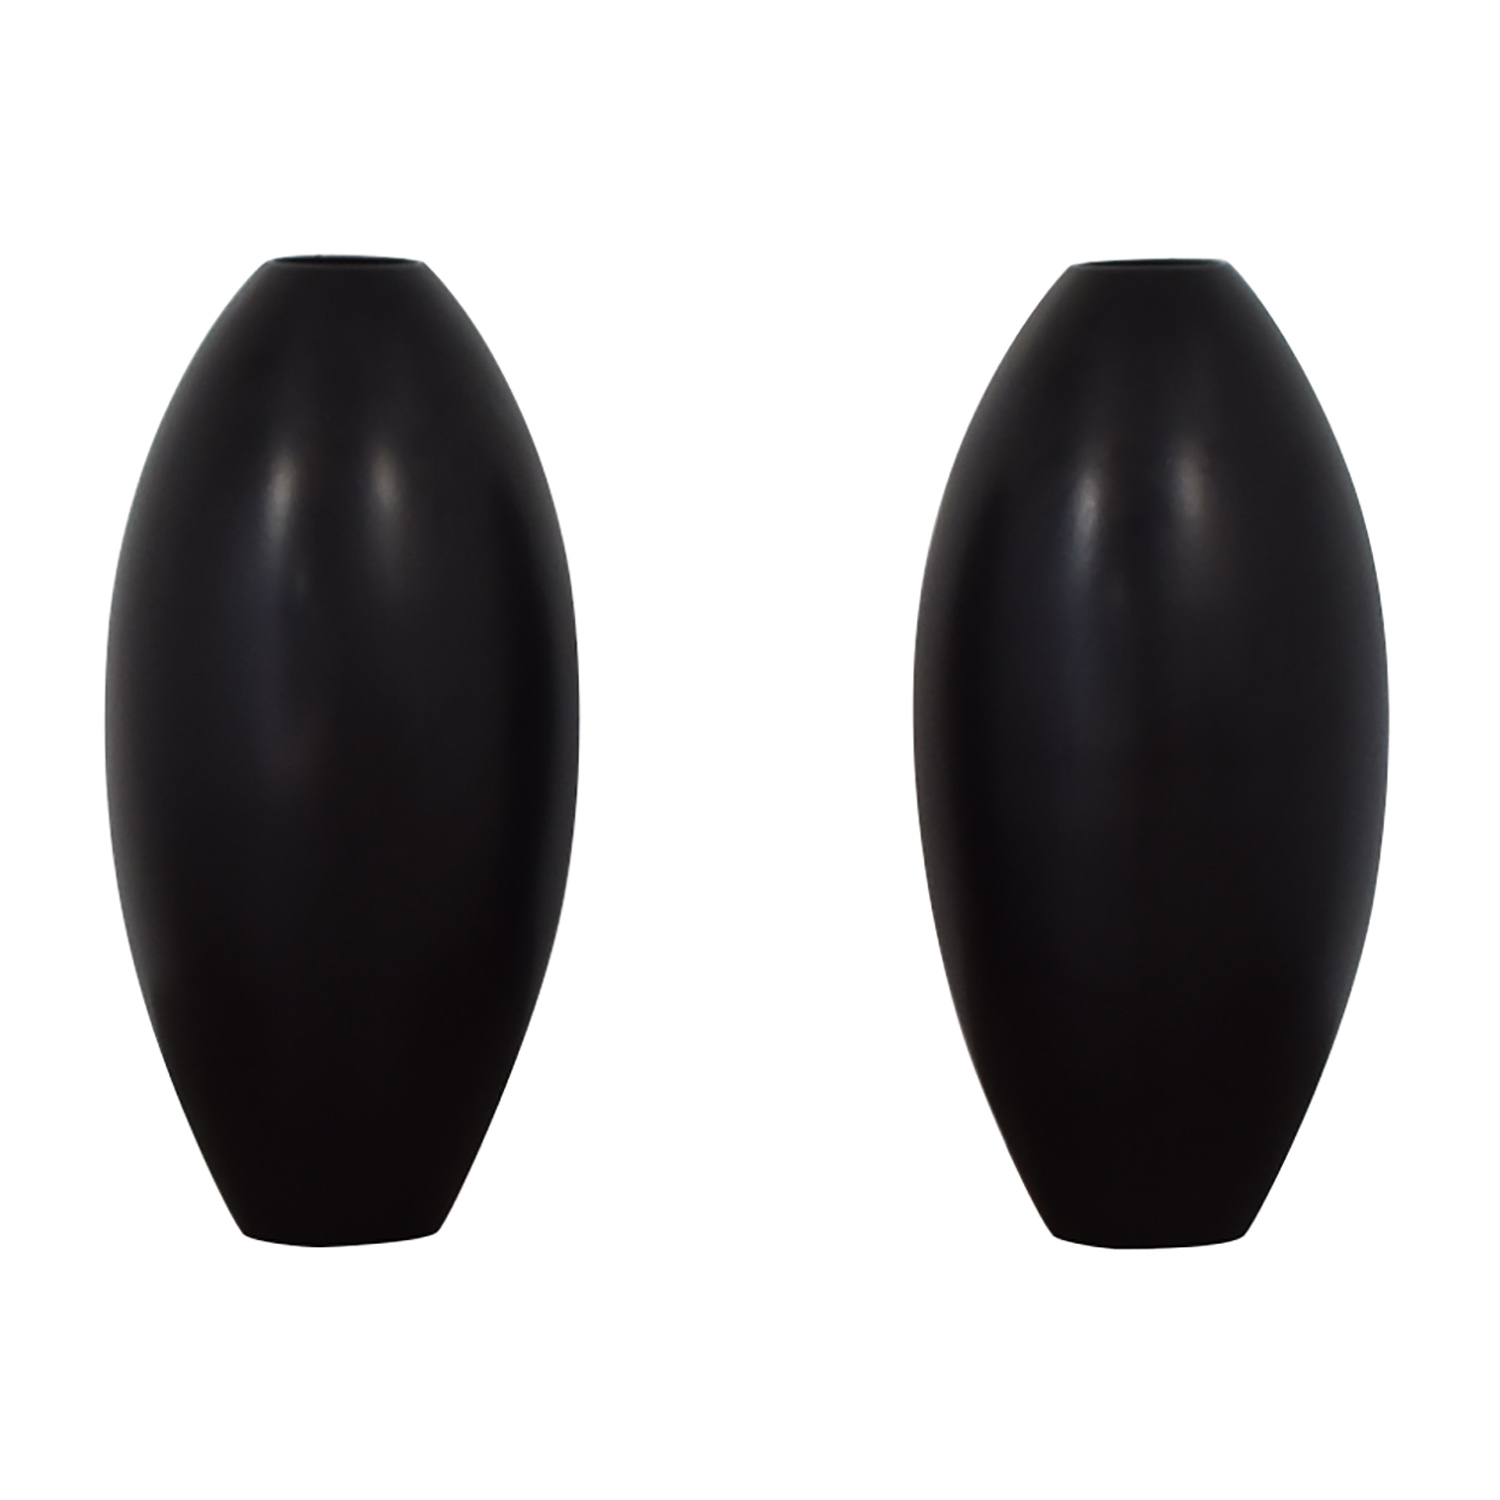 shop Sleek Modern Black Vases  Decor